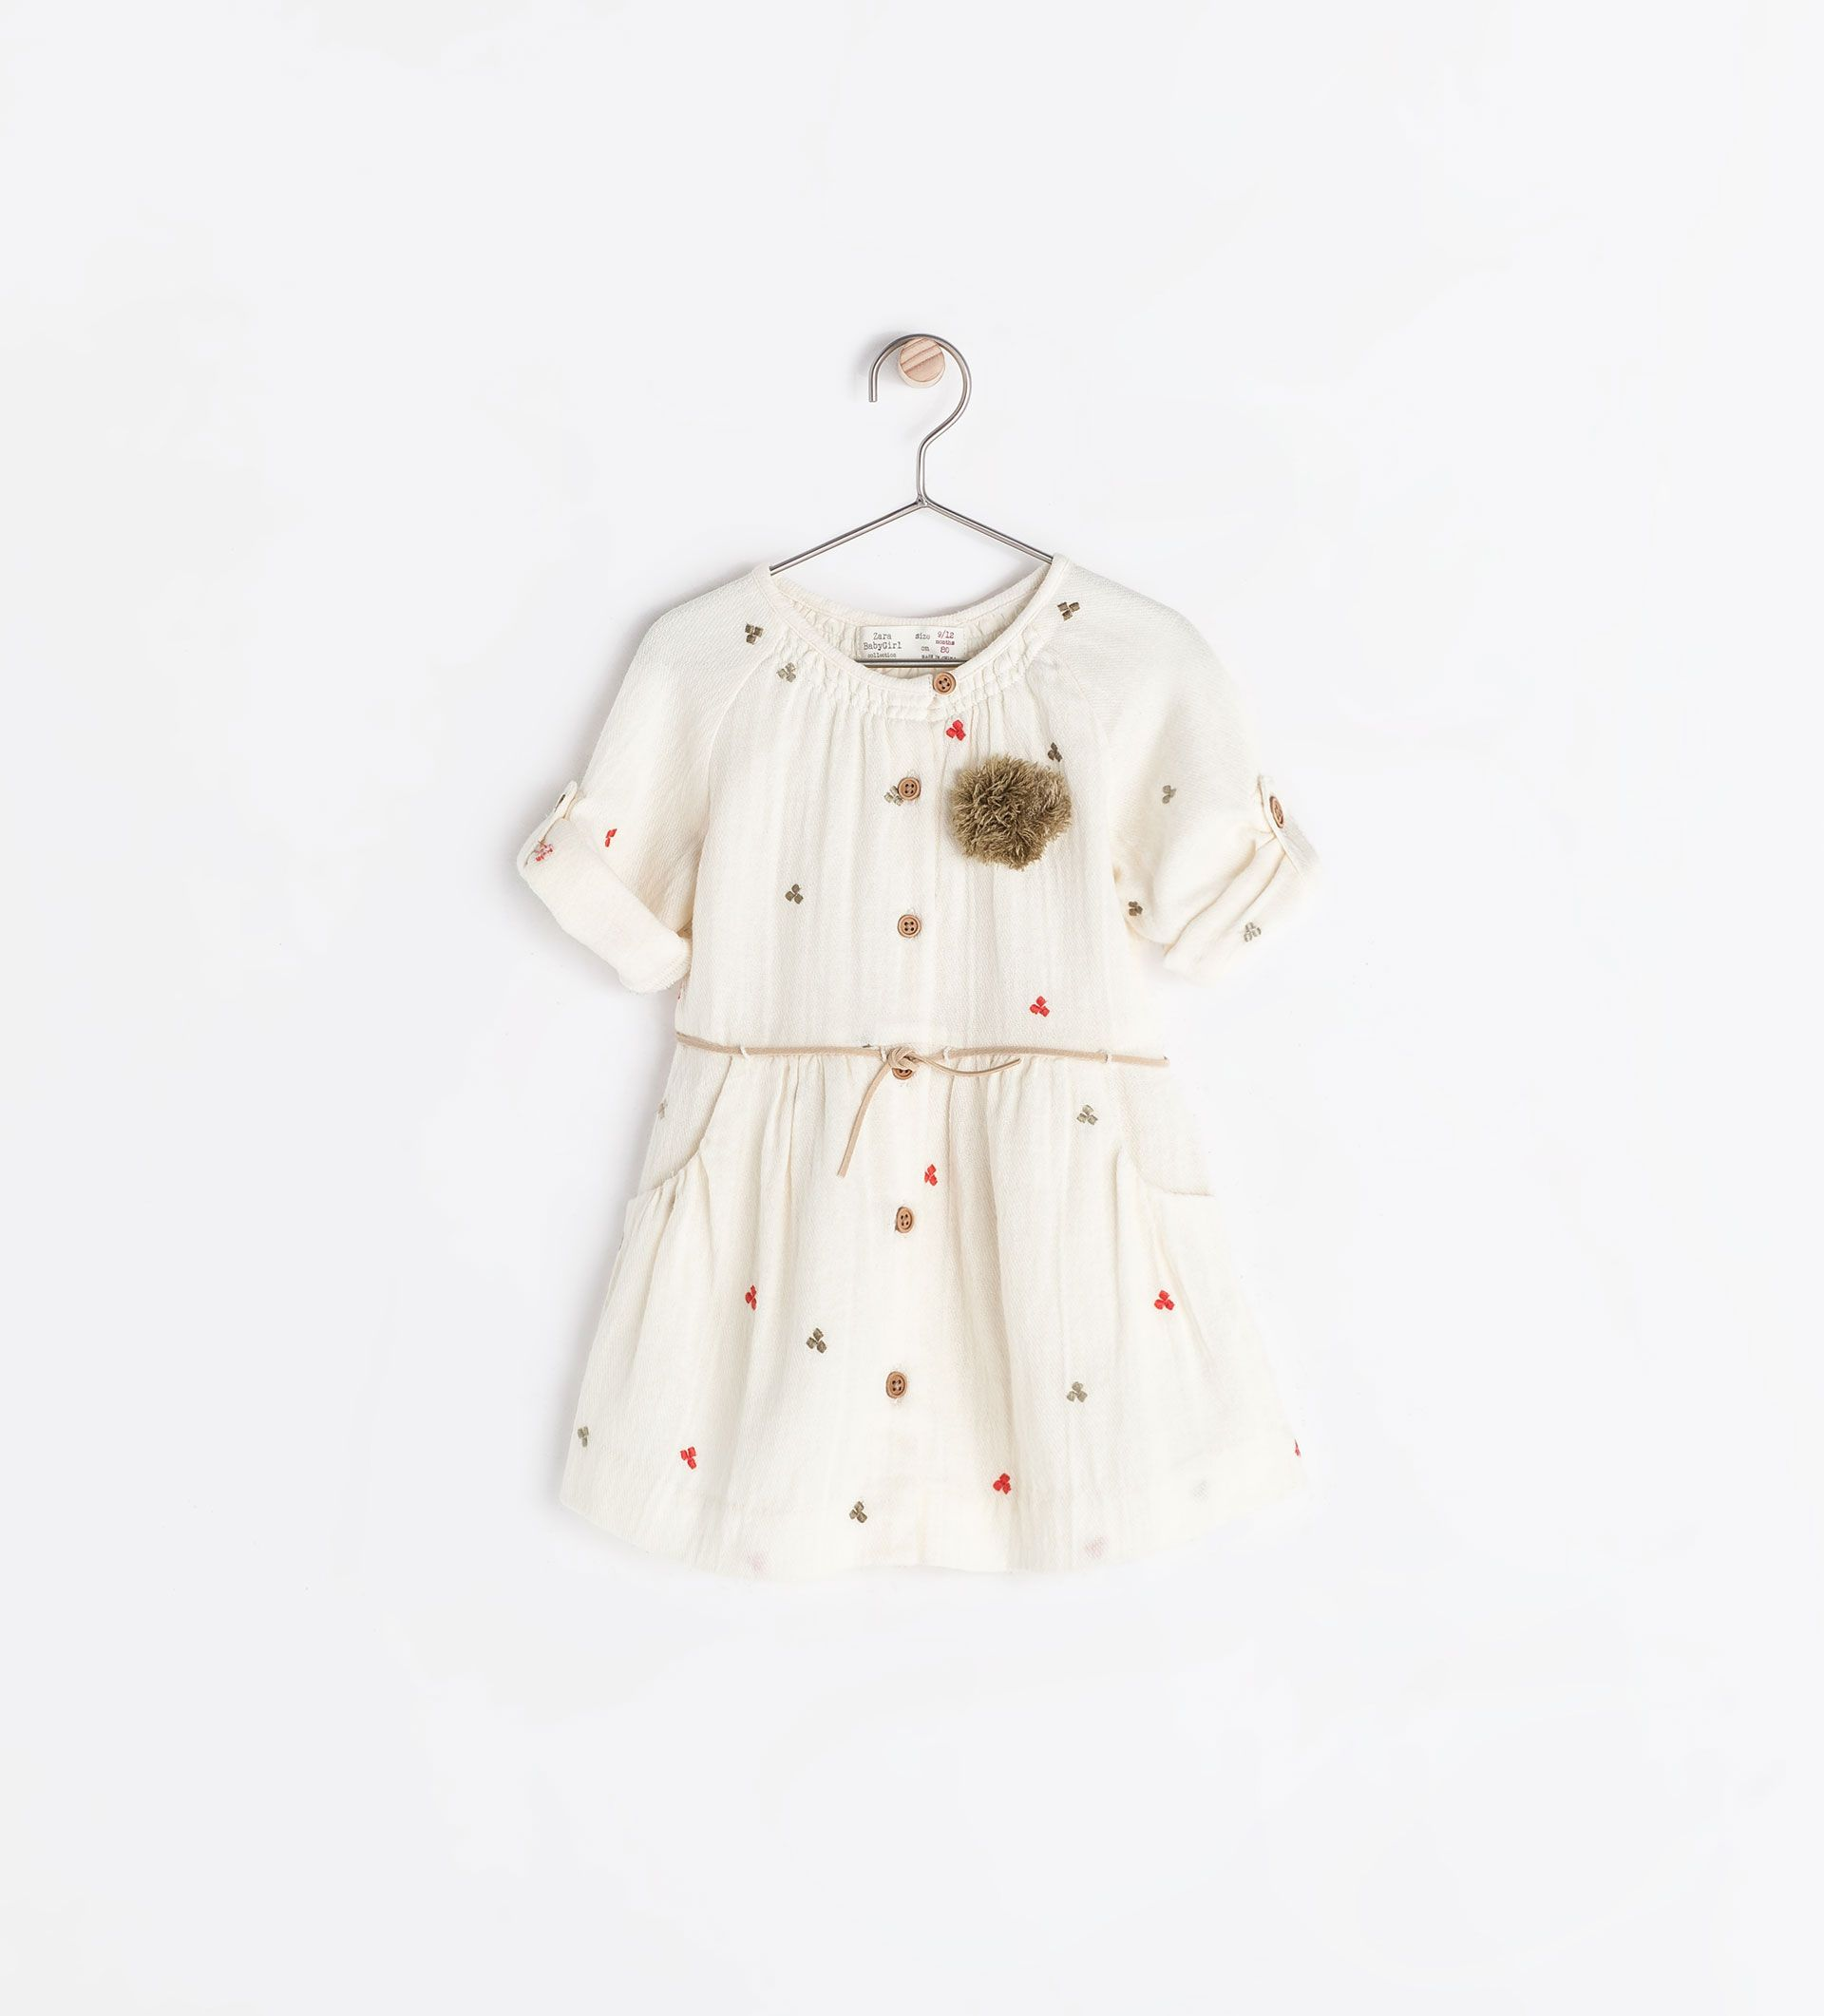 Pompom Embroidered Dress From Zara Too Expensive For